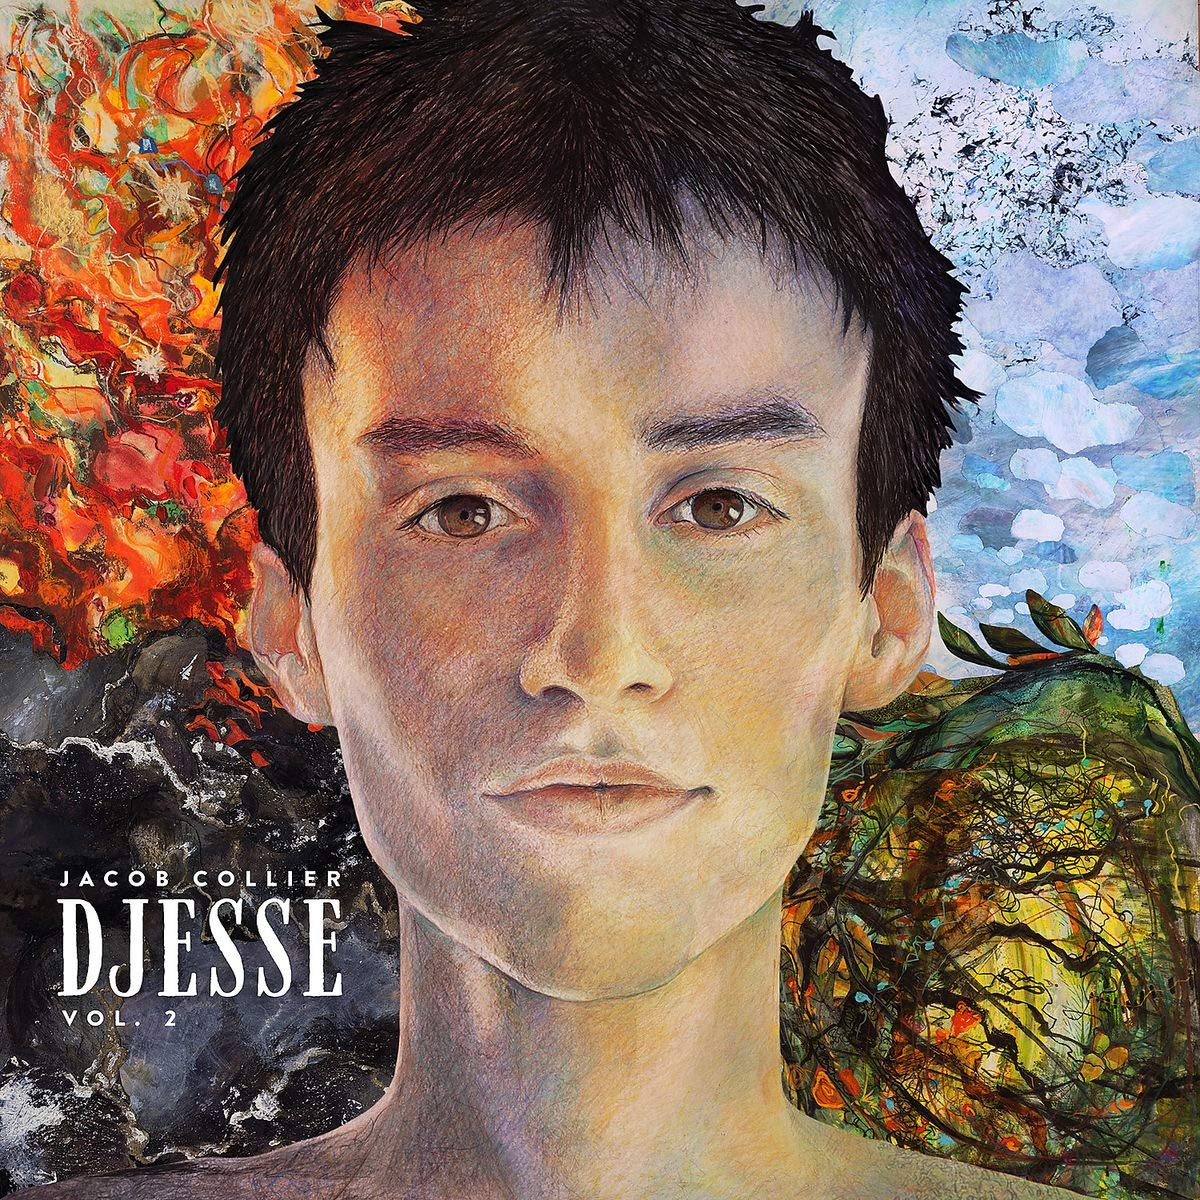 JACOB COLLIER - Djesse Vol. 2 cover